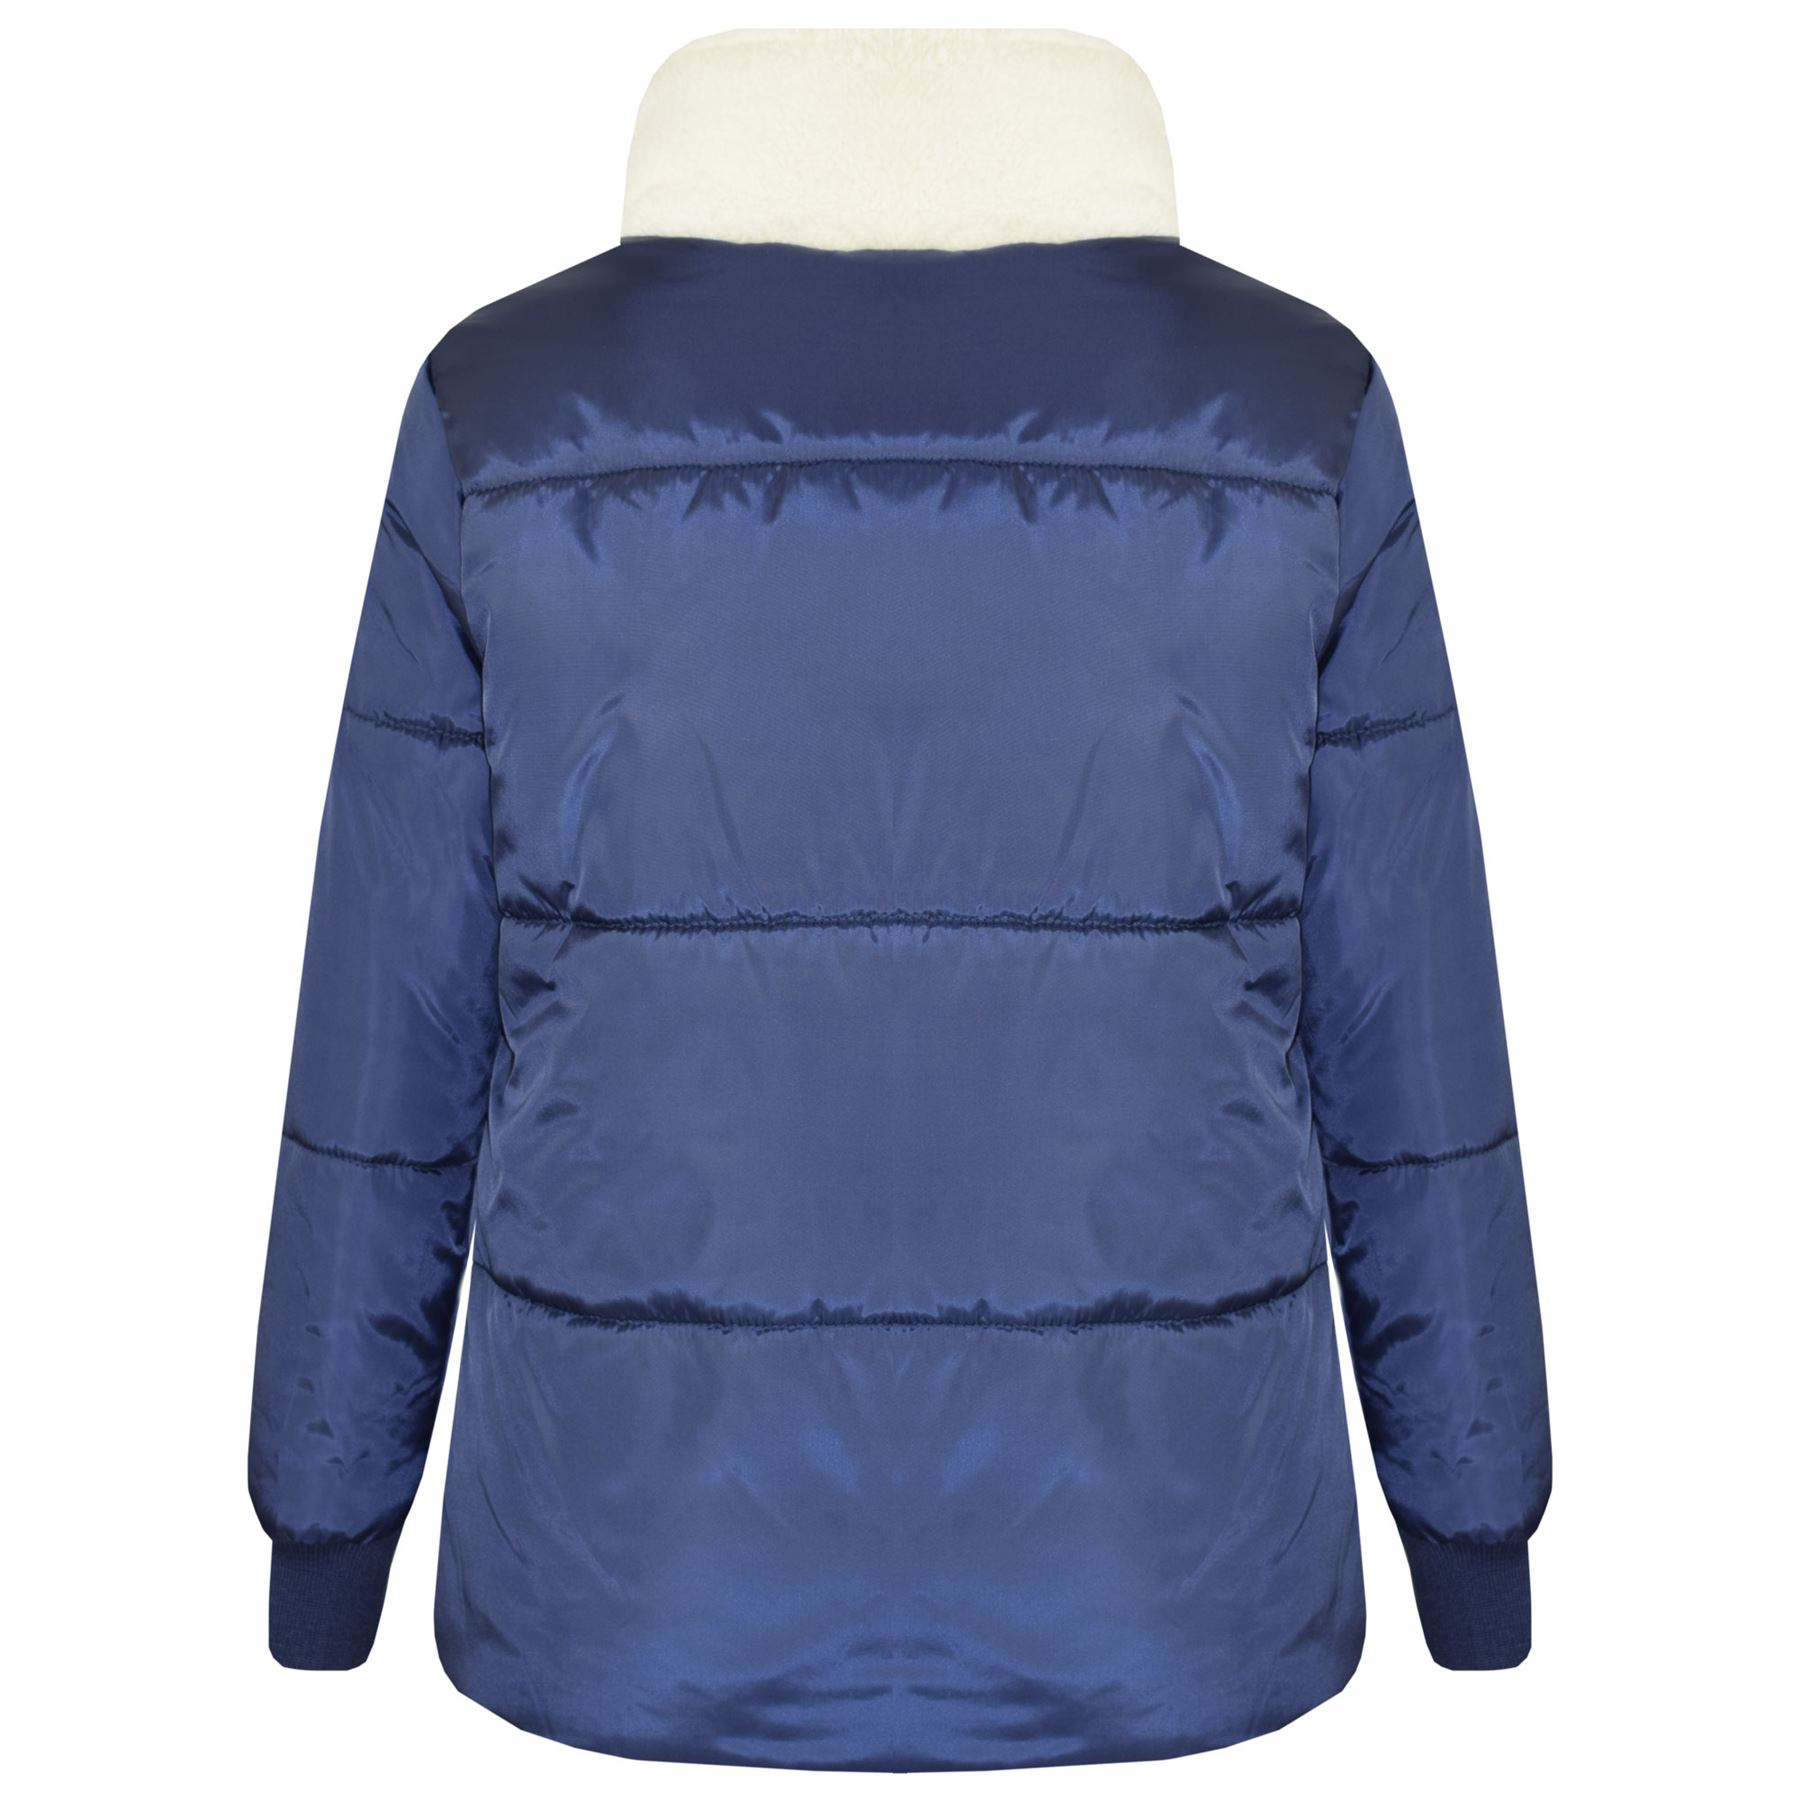 ed39c8f20 Kids Girls Boys Parka Jacket Zipped Padded School Jackets Outwear ...